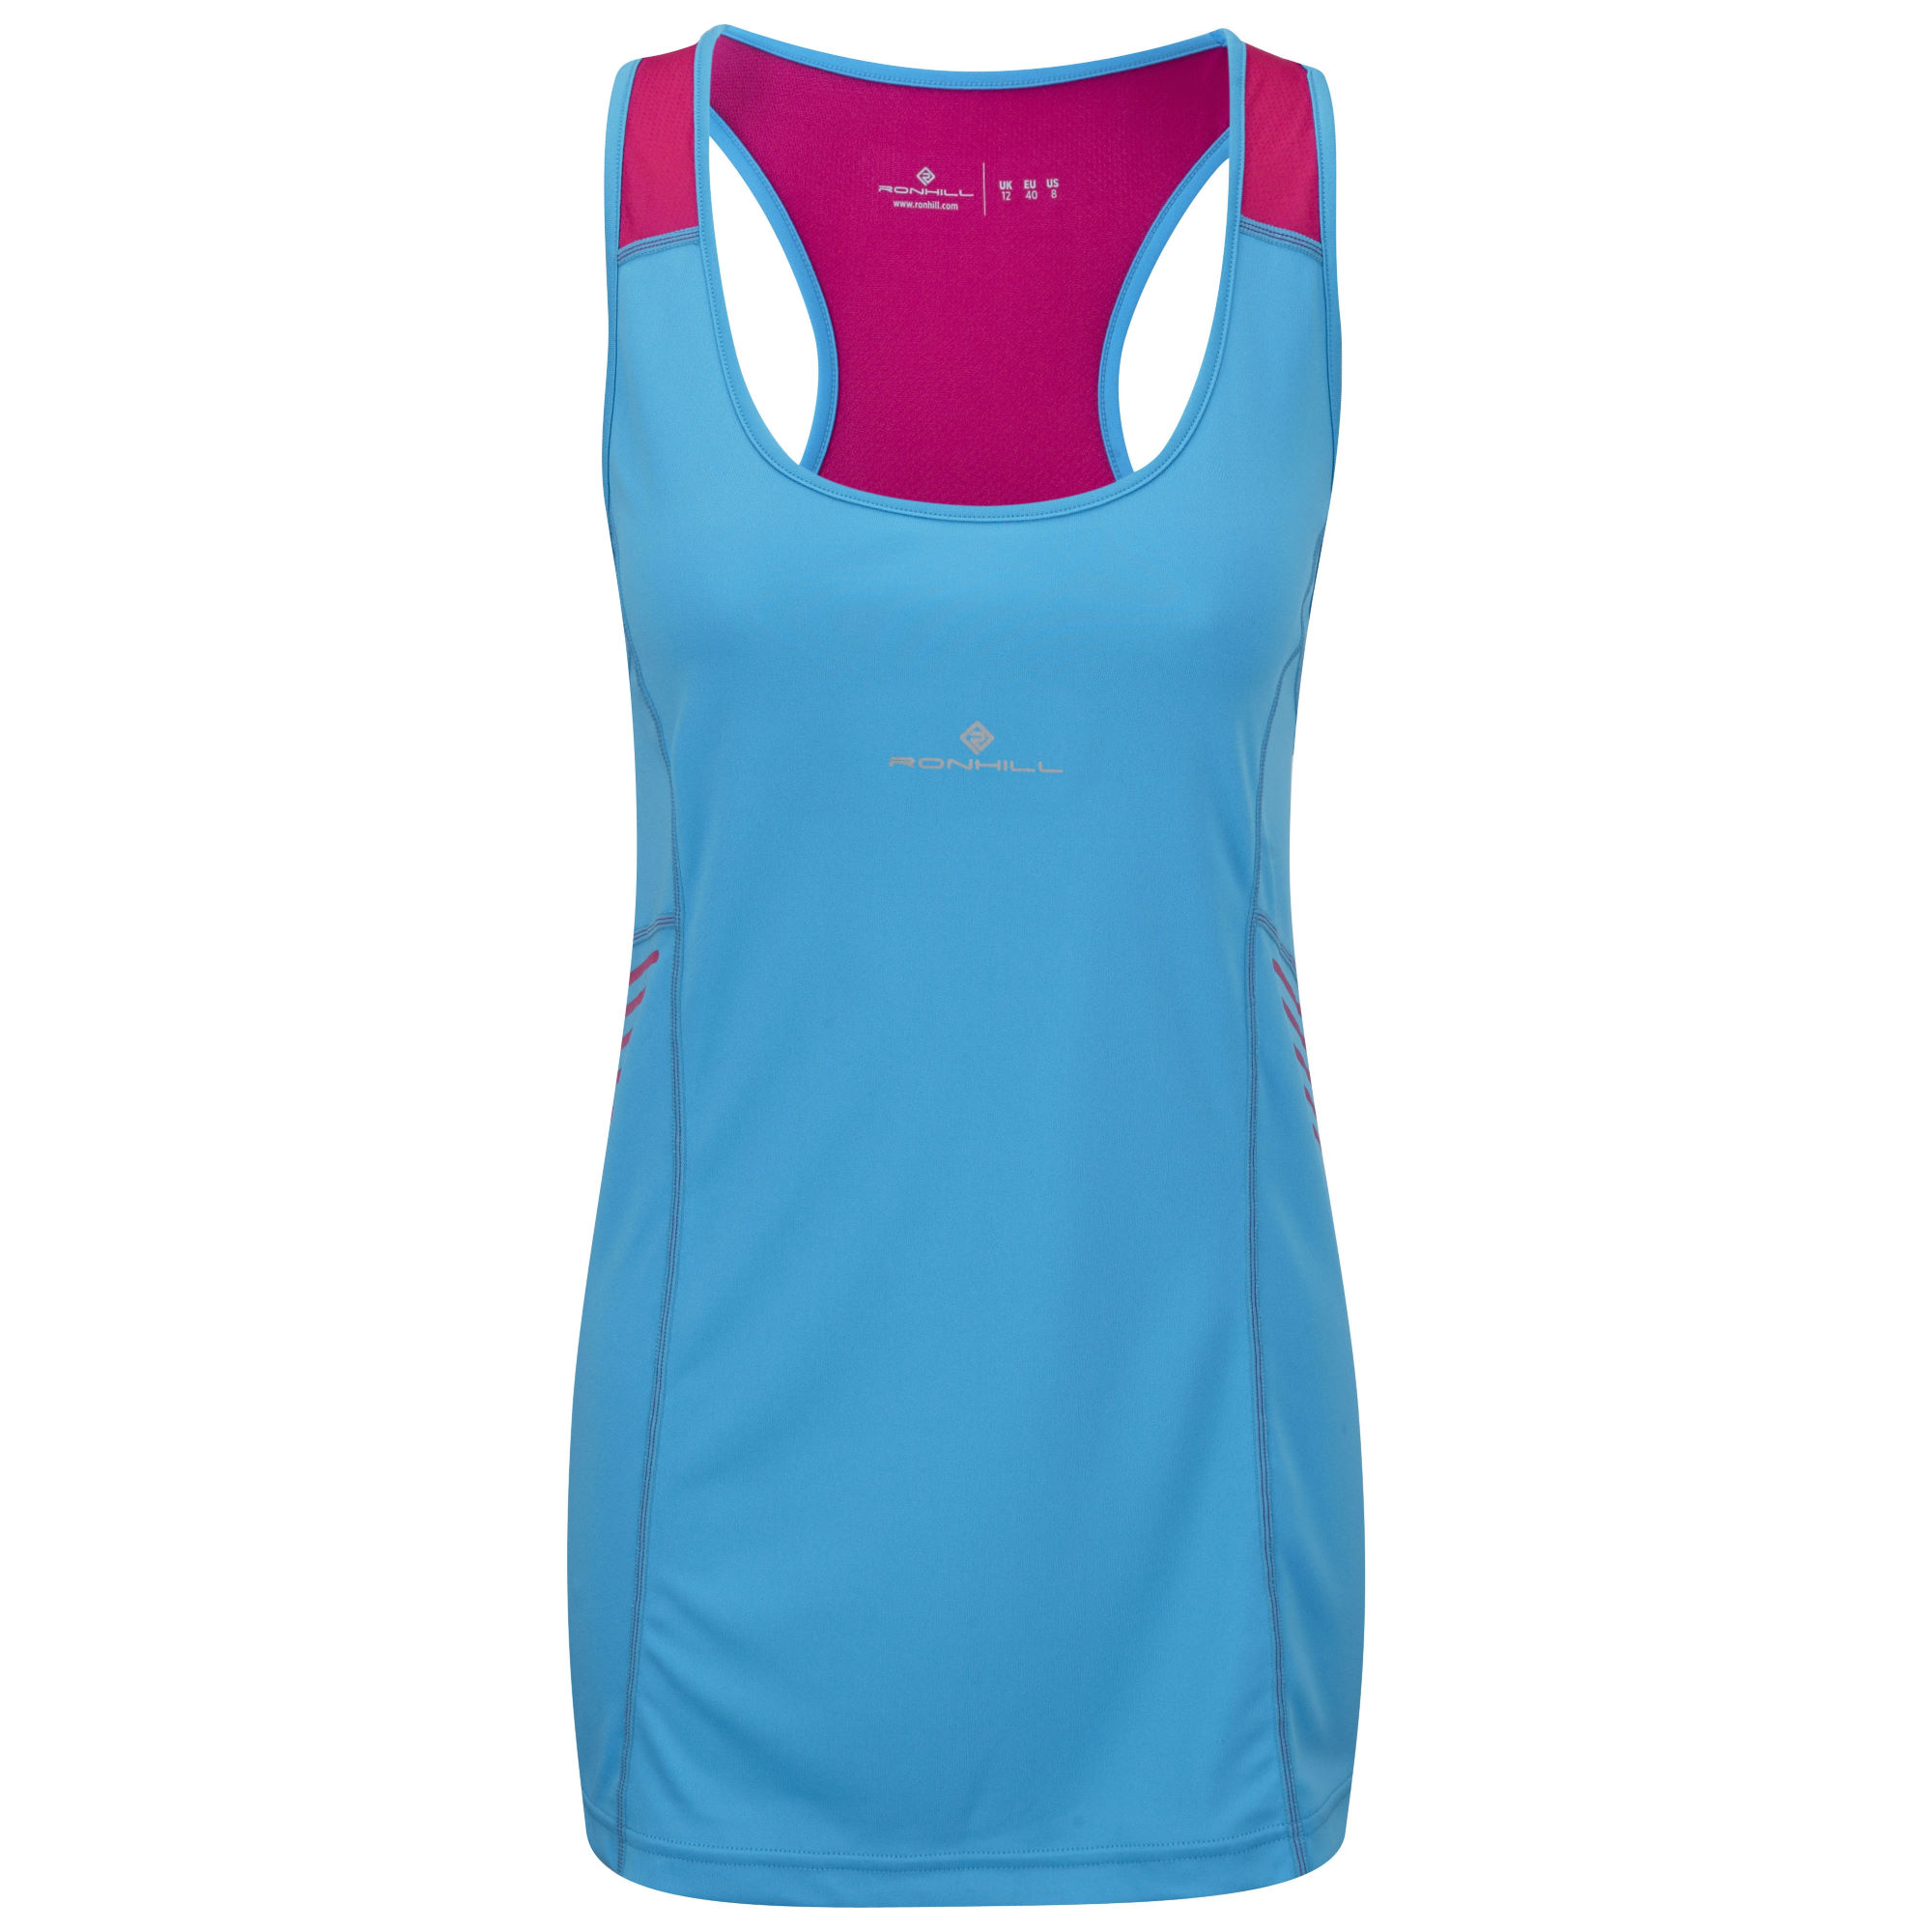 Find Women's Running Jackets & Vests at gehedoruqigimate.ml Enjoy free shipping and returns with NikePlus.